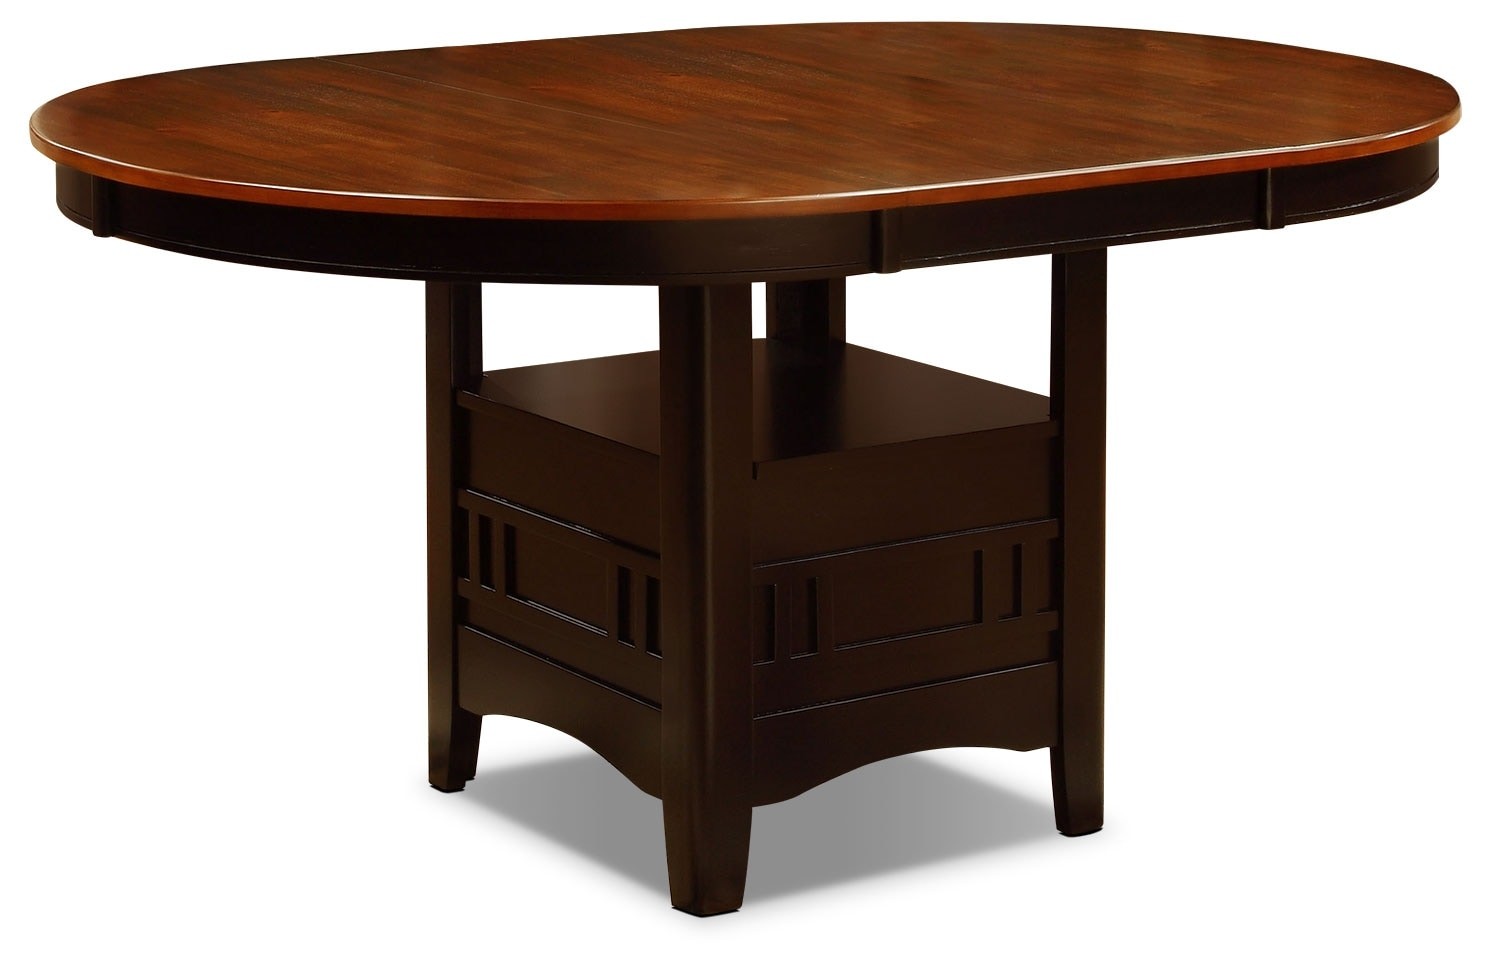 Dining Room Furniture - Dara Dining Table